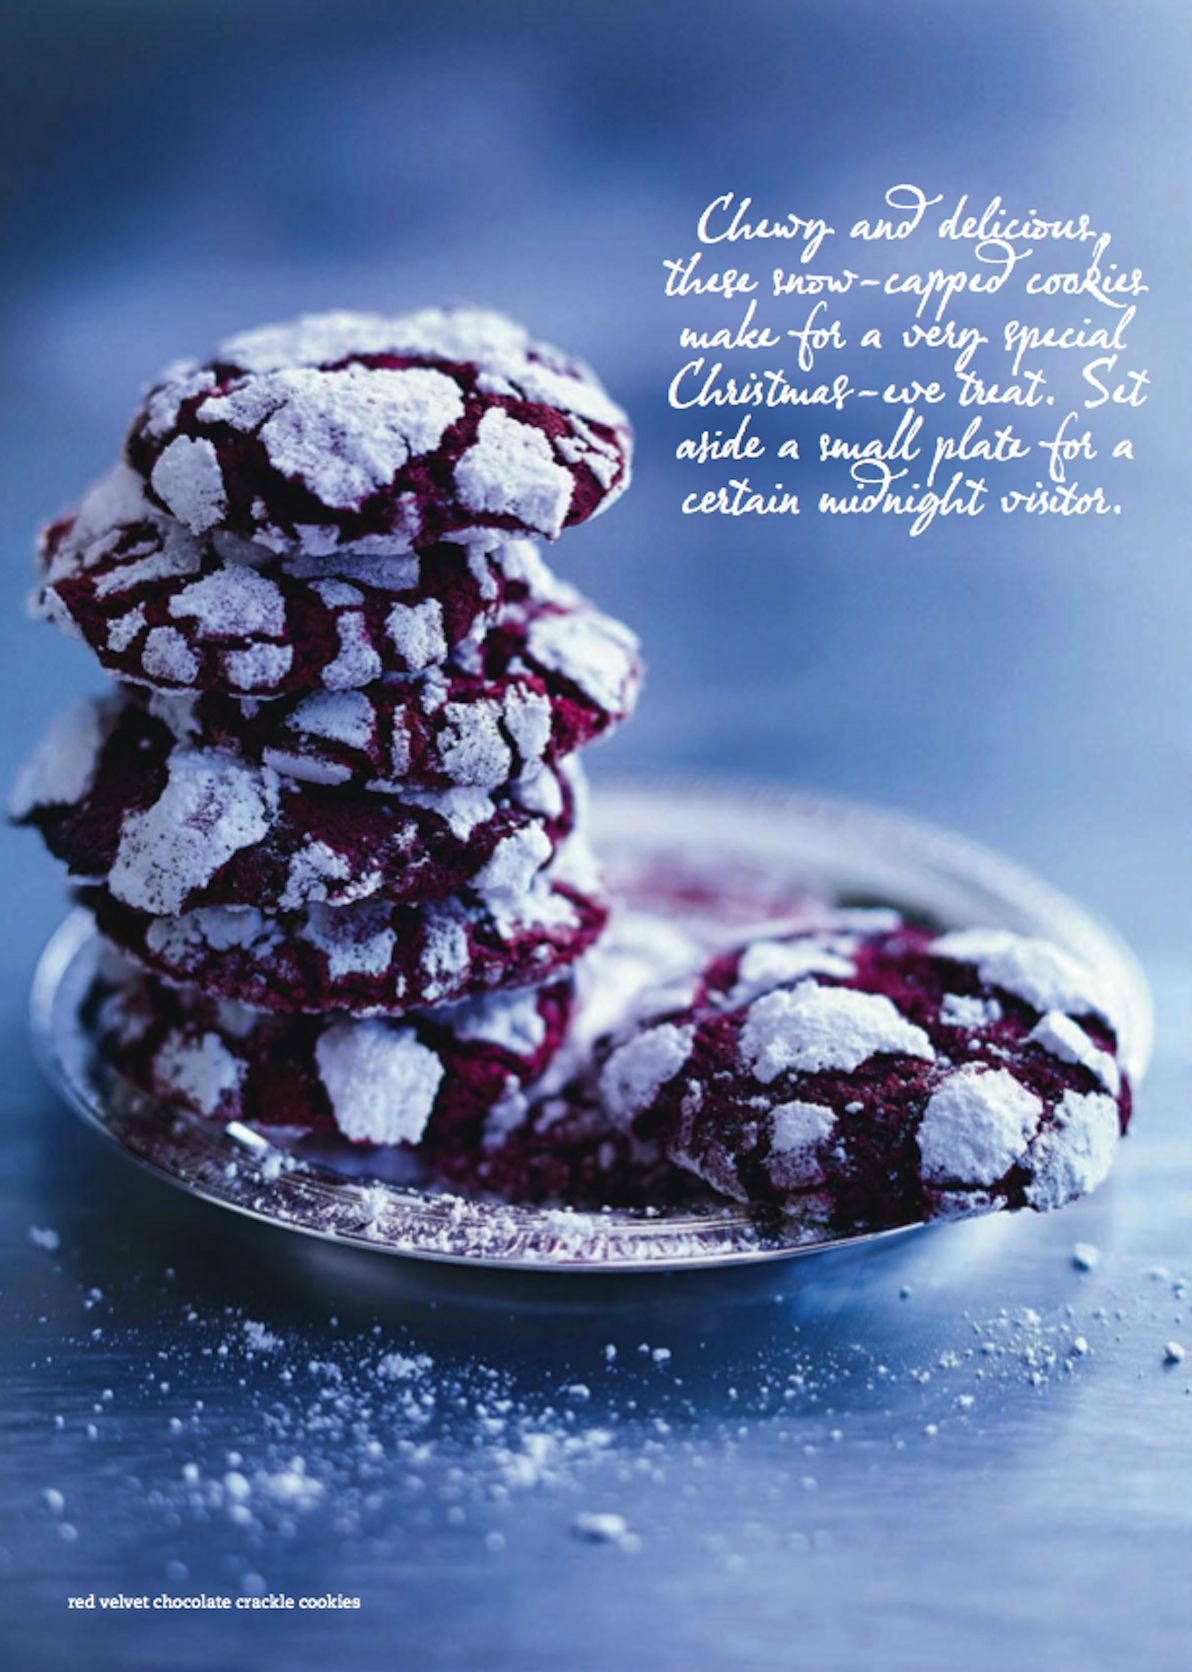 red velvet chocolate crackle cookies. jan 2014 donna hay | Yummy ...